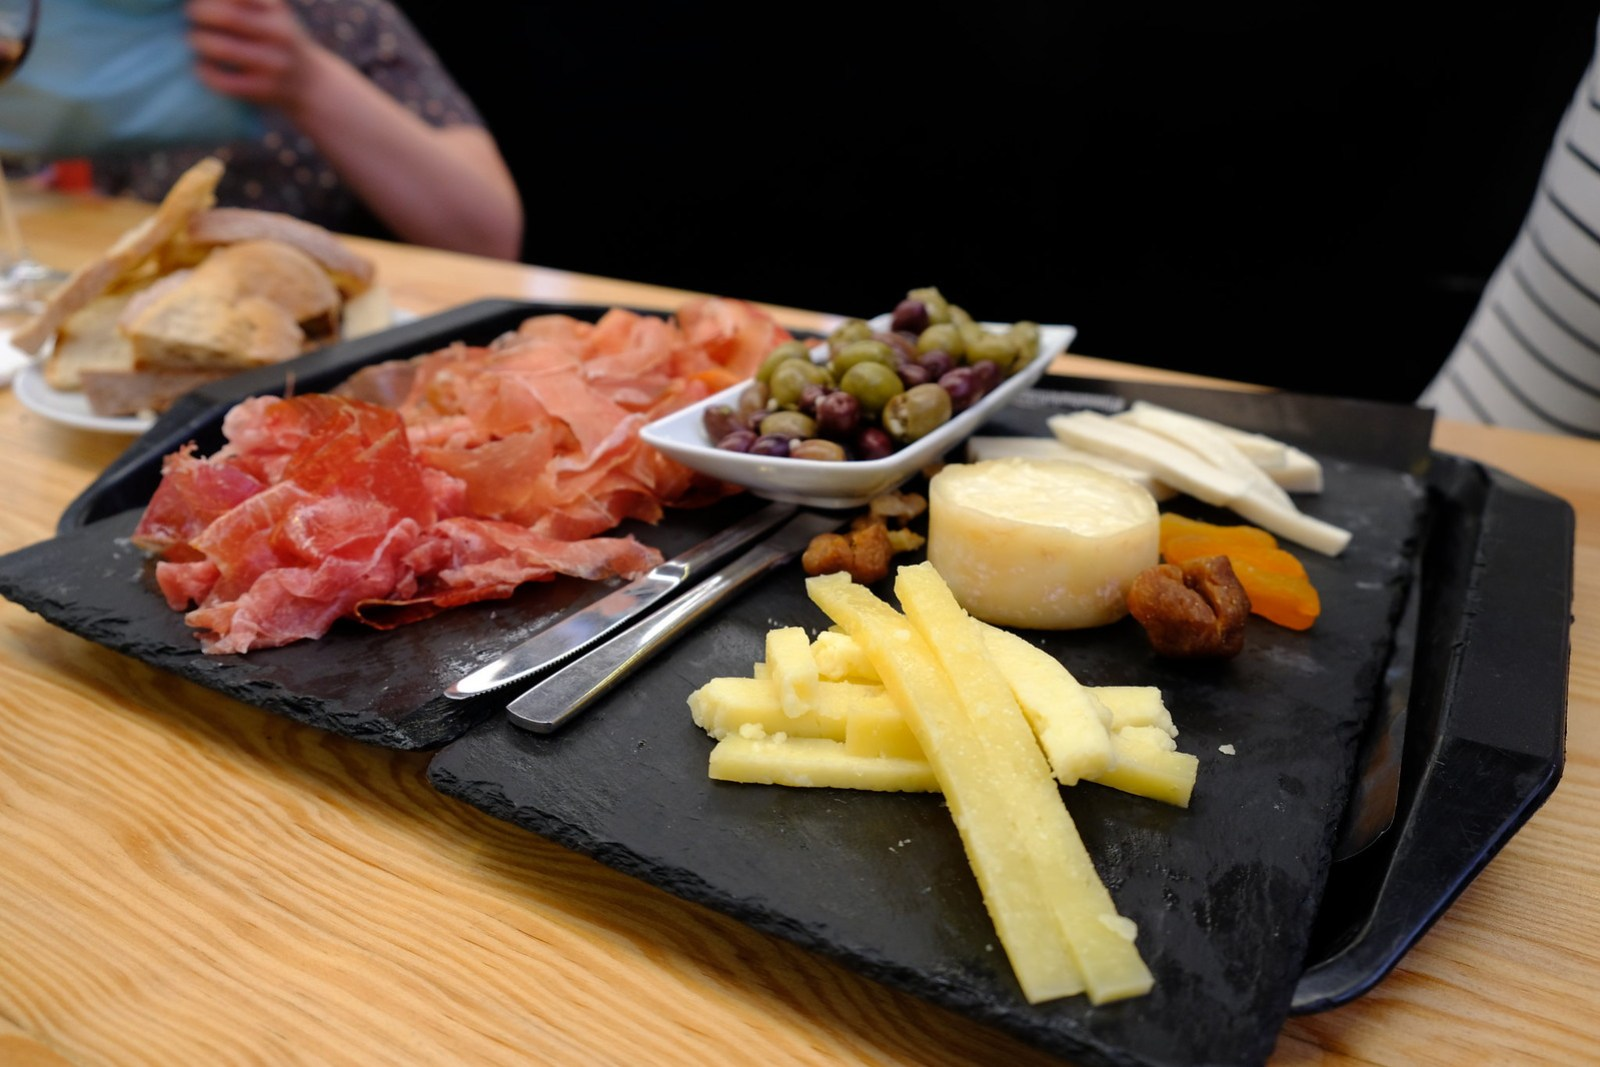 Jamon, 3 Types of Cheese and Olives